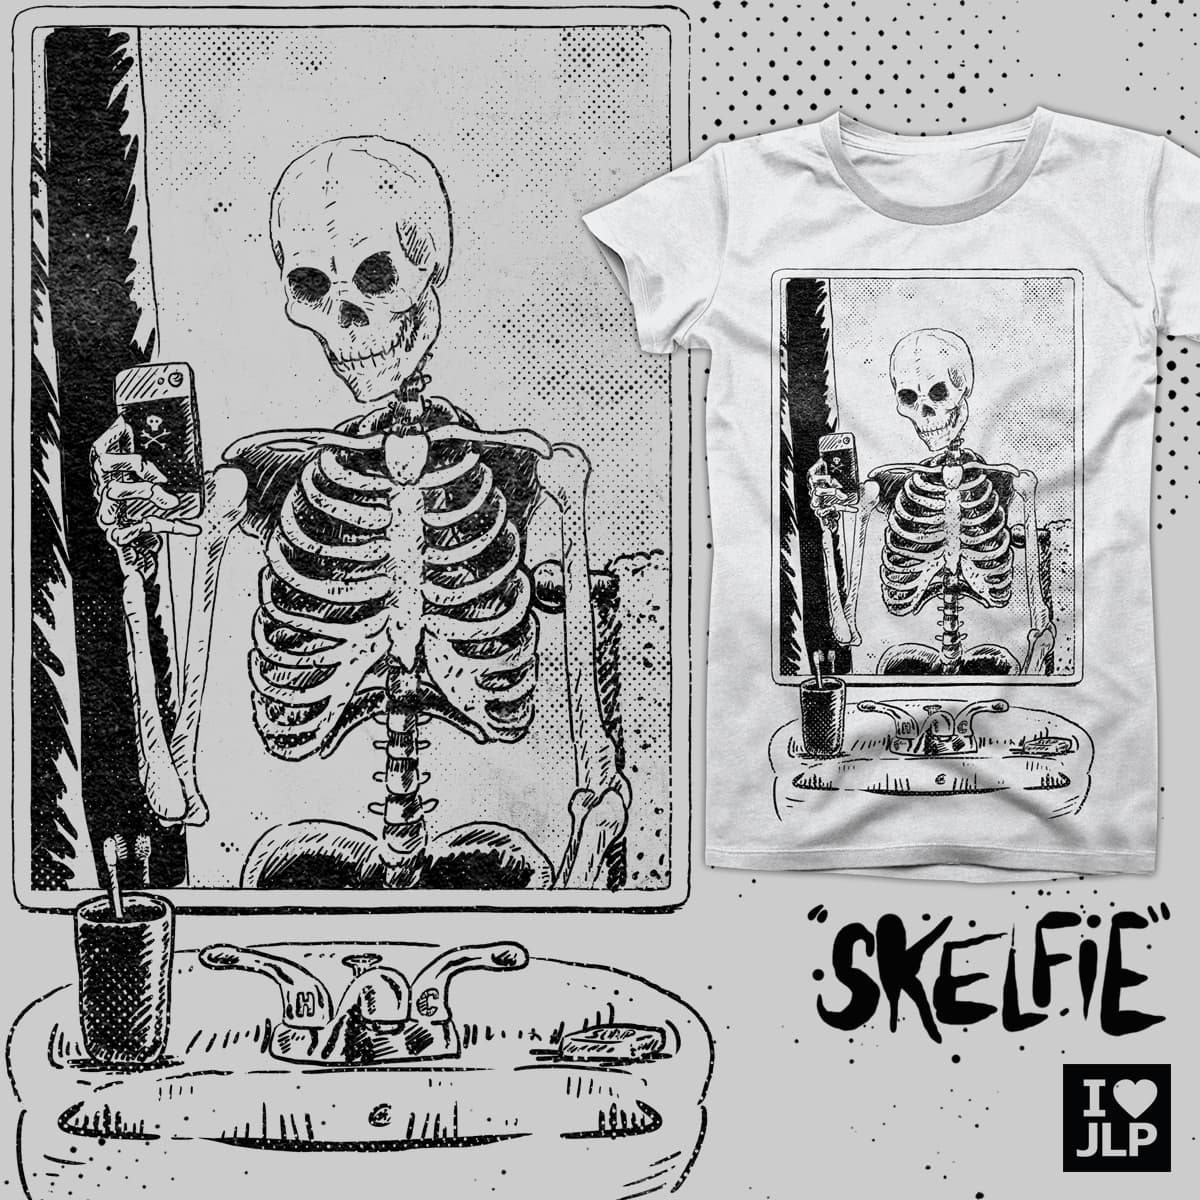 SKELFIE by iheartjlp on Threadless